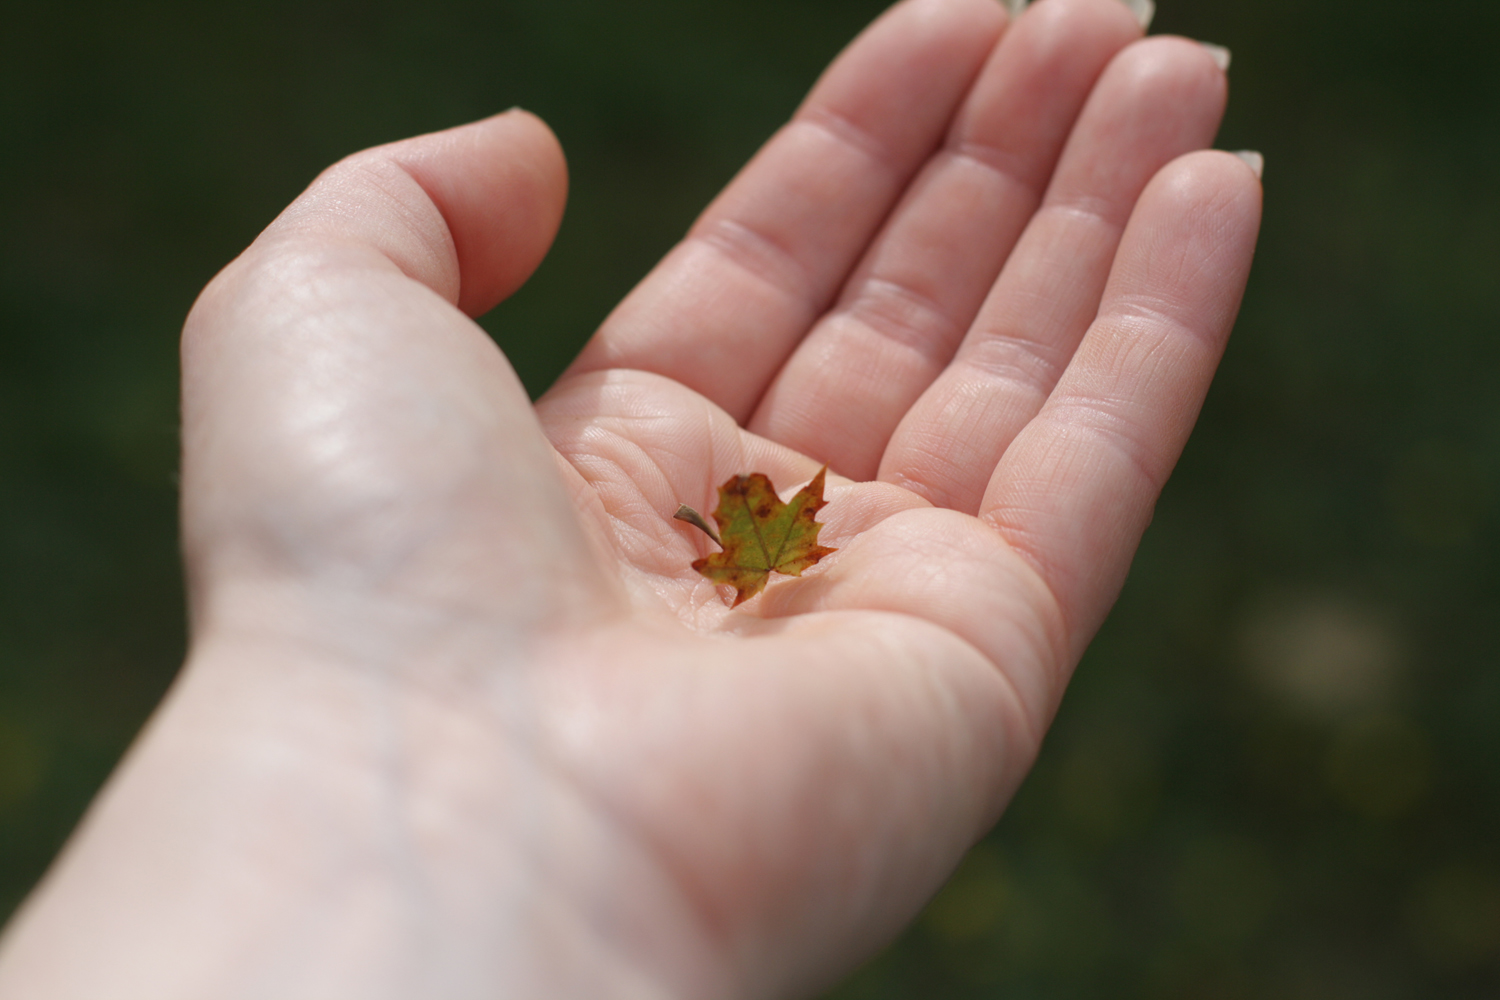 B16_Sep02_Tiny_Maple_Leaf.jpg